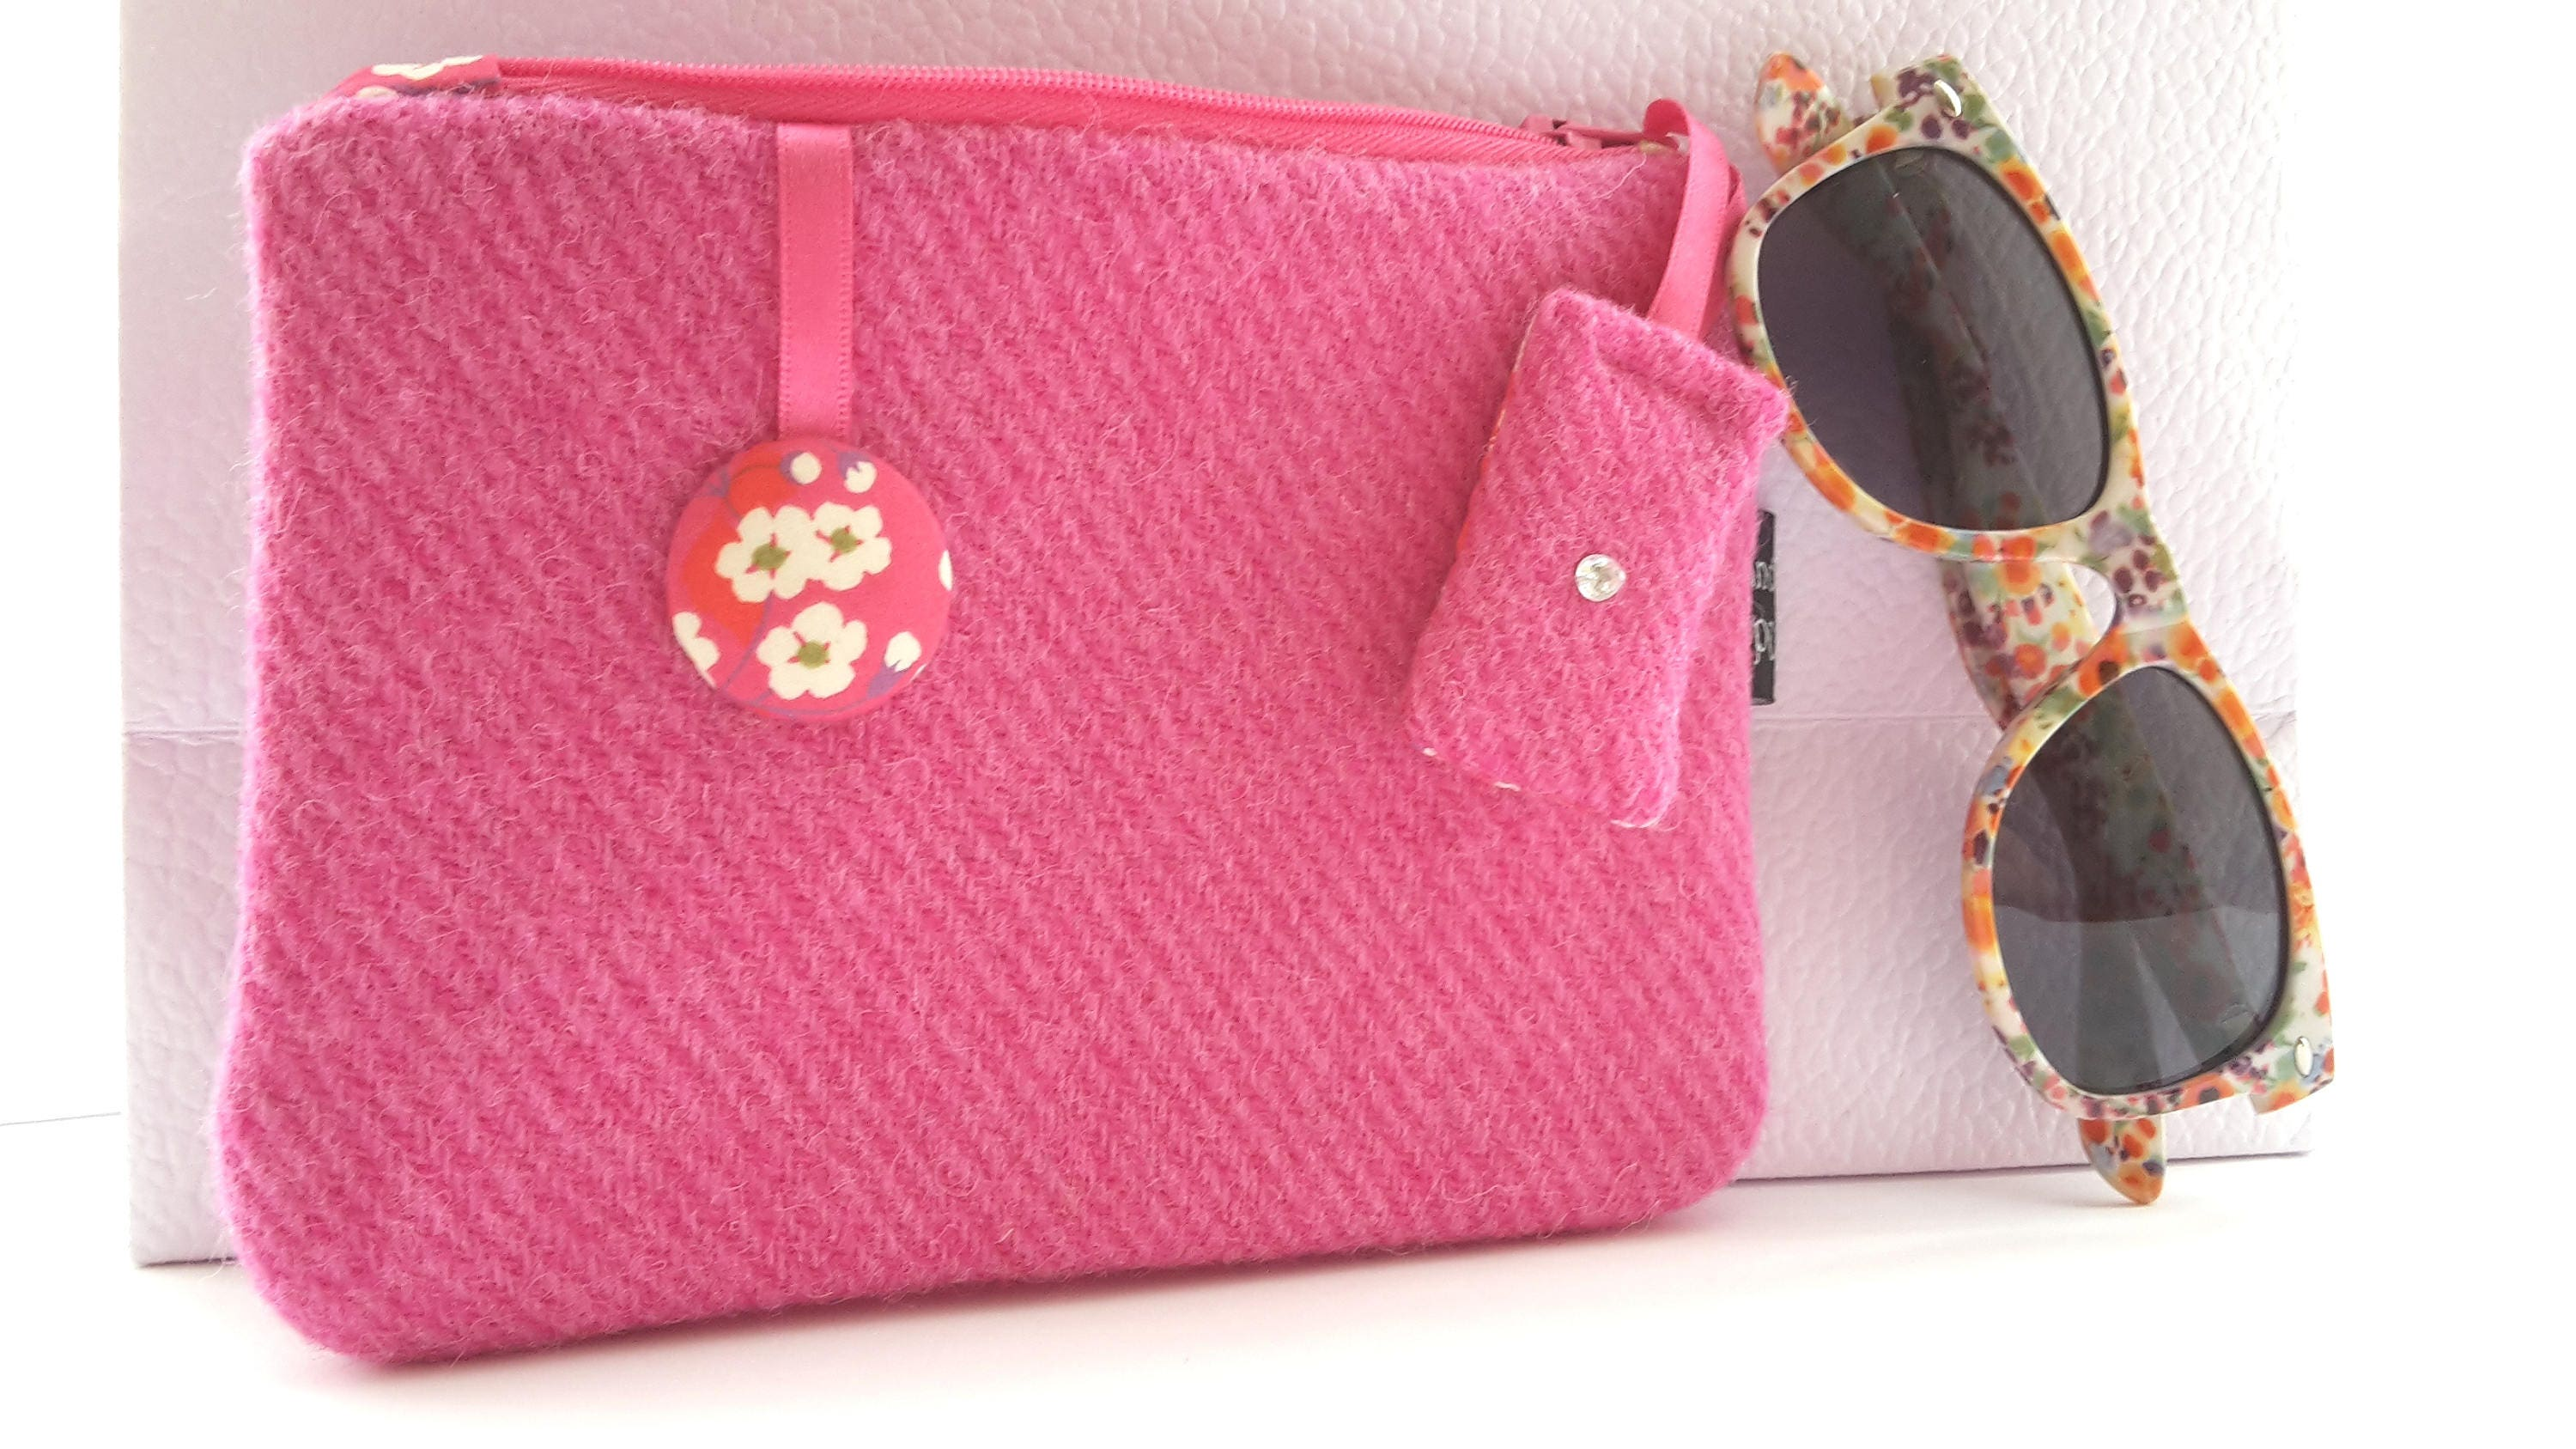 Harris Tweed Fuchsia Pink Purse with Liberty of London Mitsi Print Lining